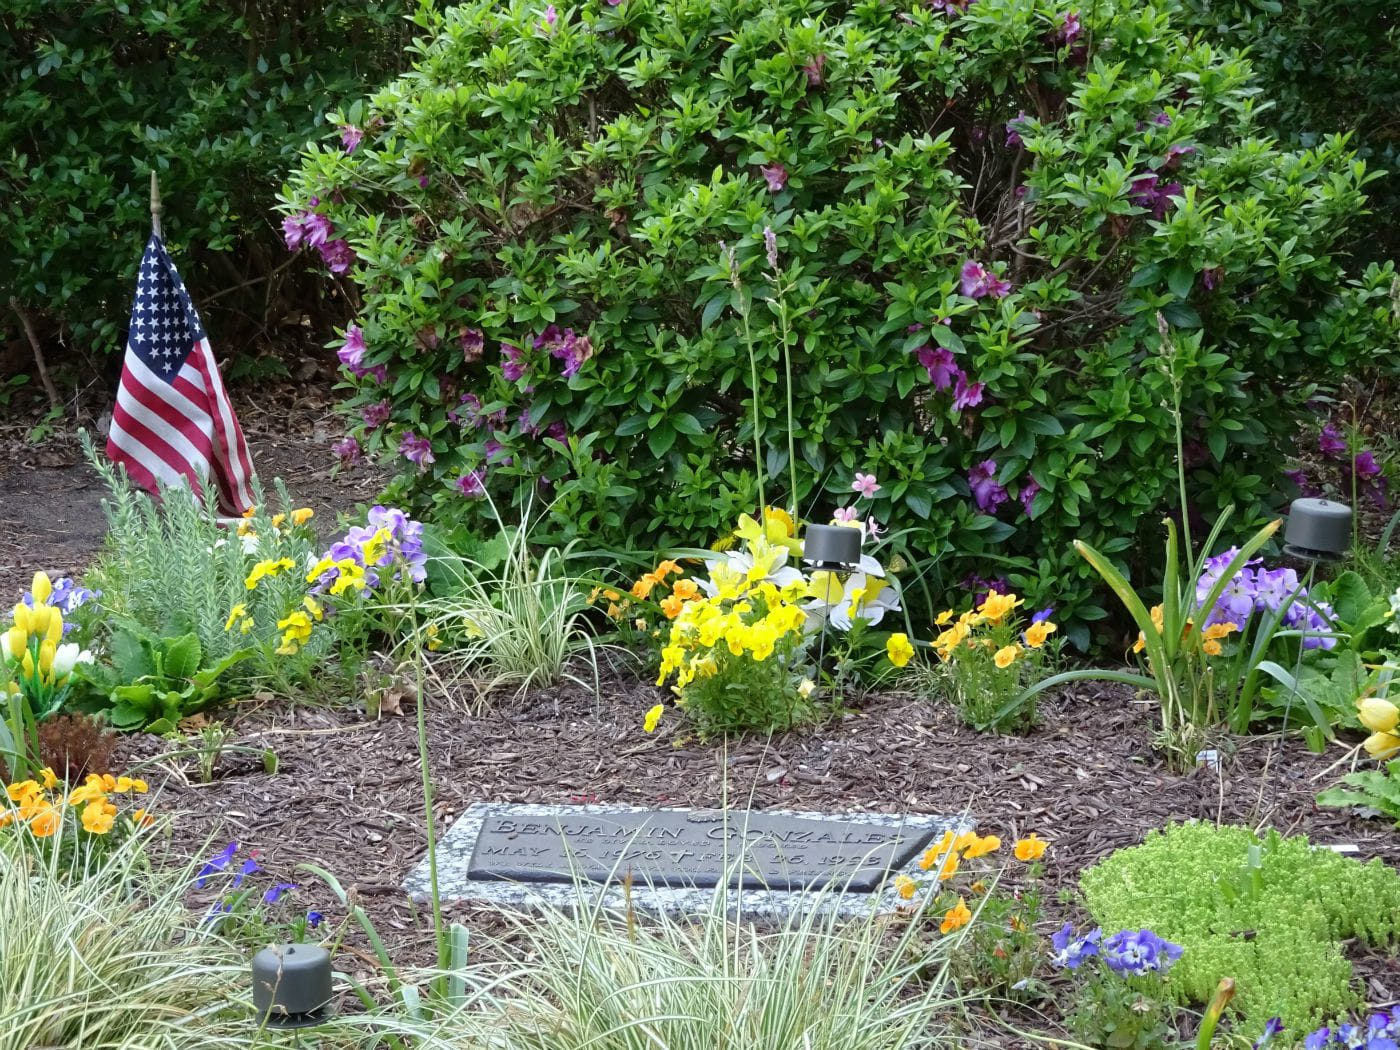 headstone surrounded by flowers and american flag